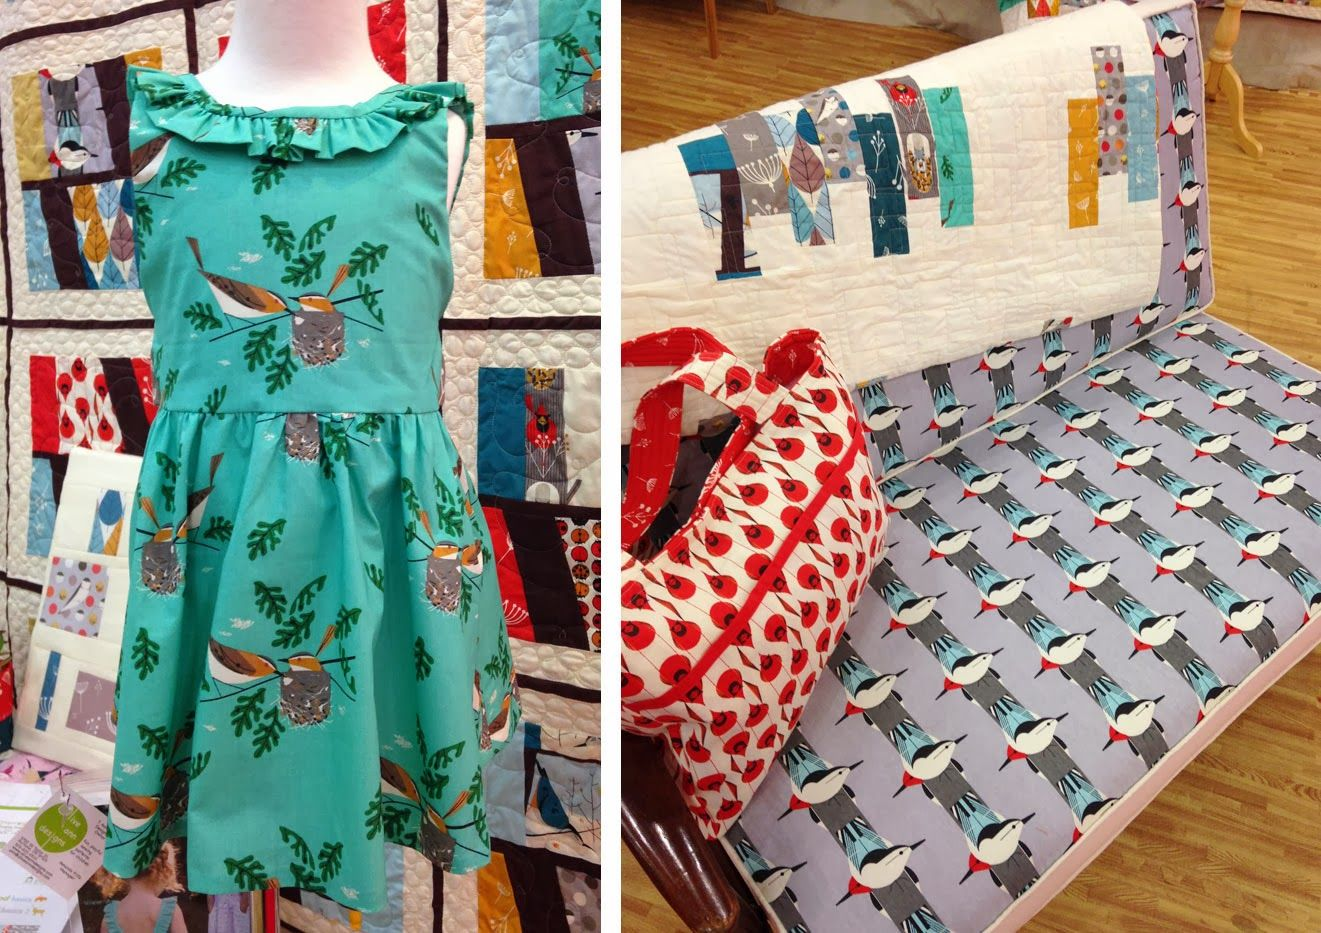 birch fabric projects - Google Search